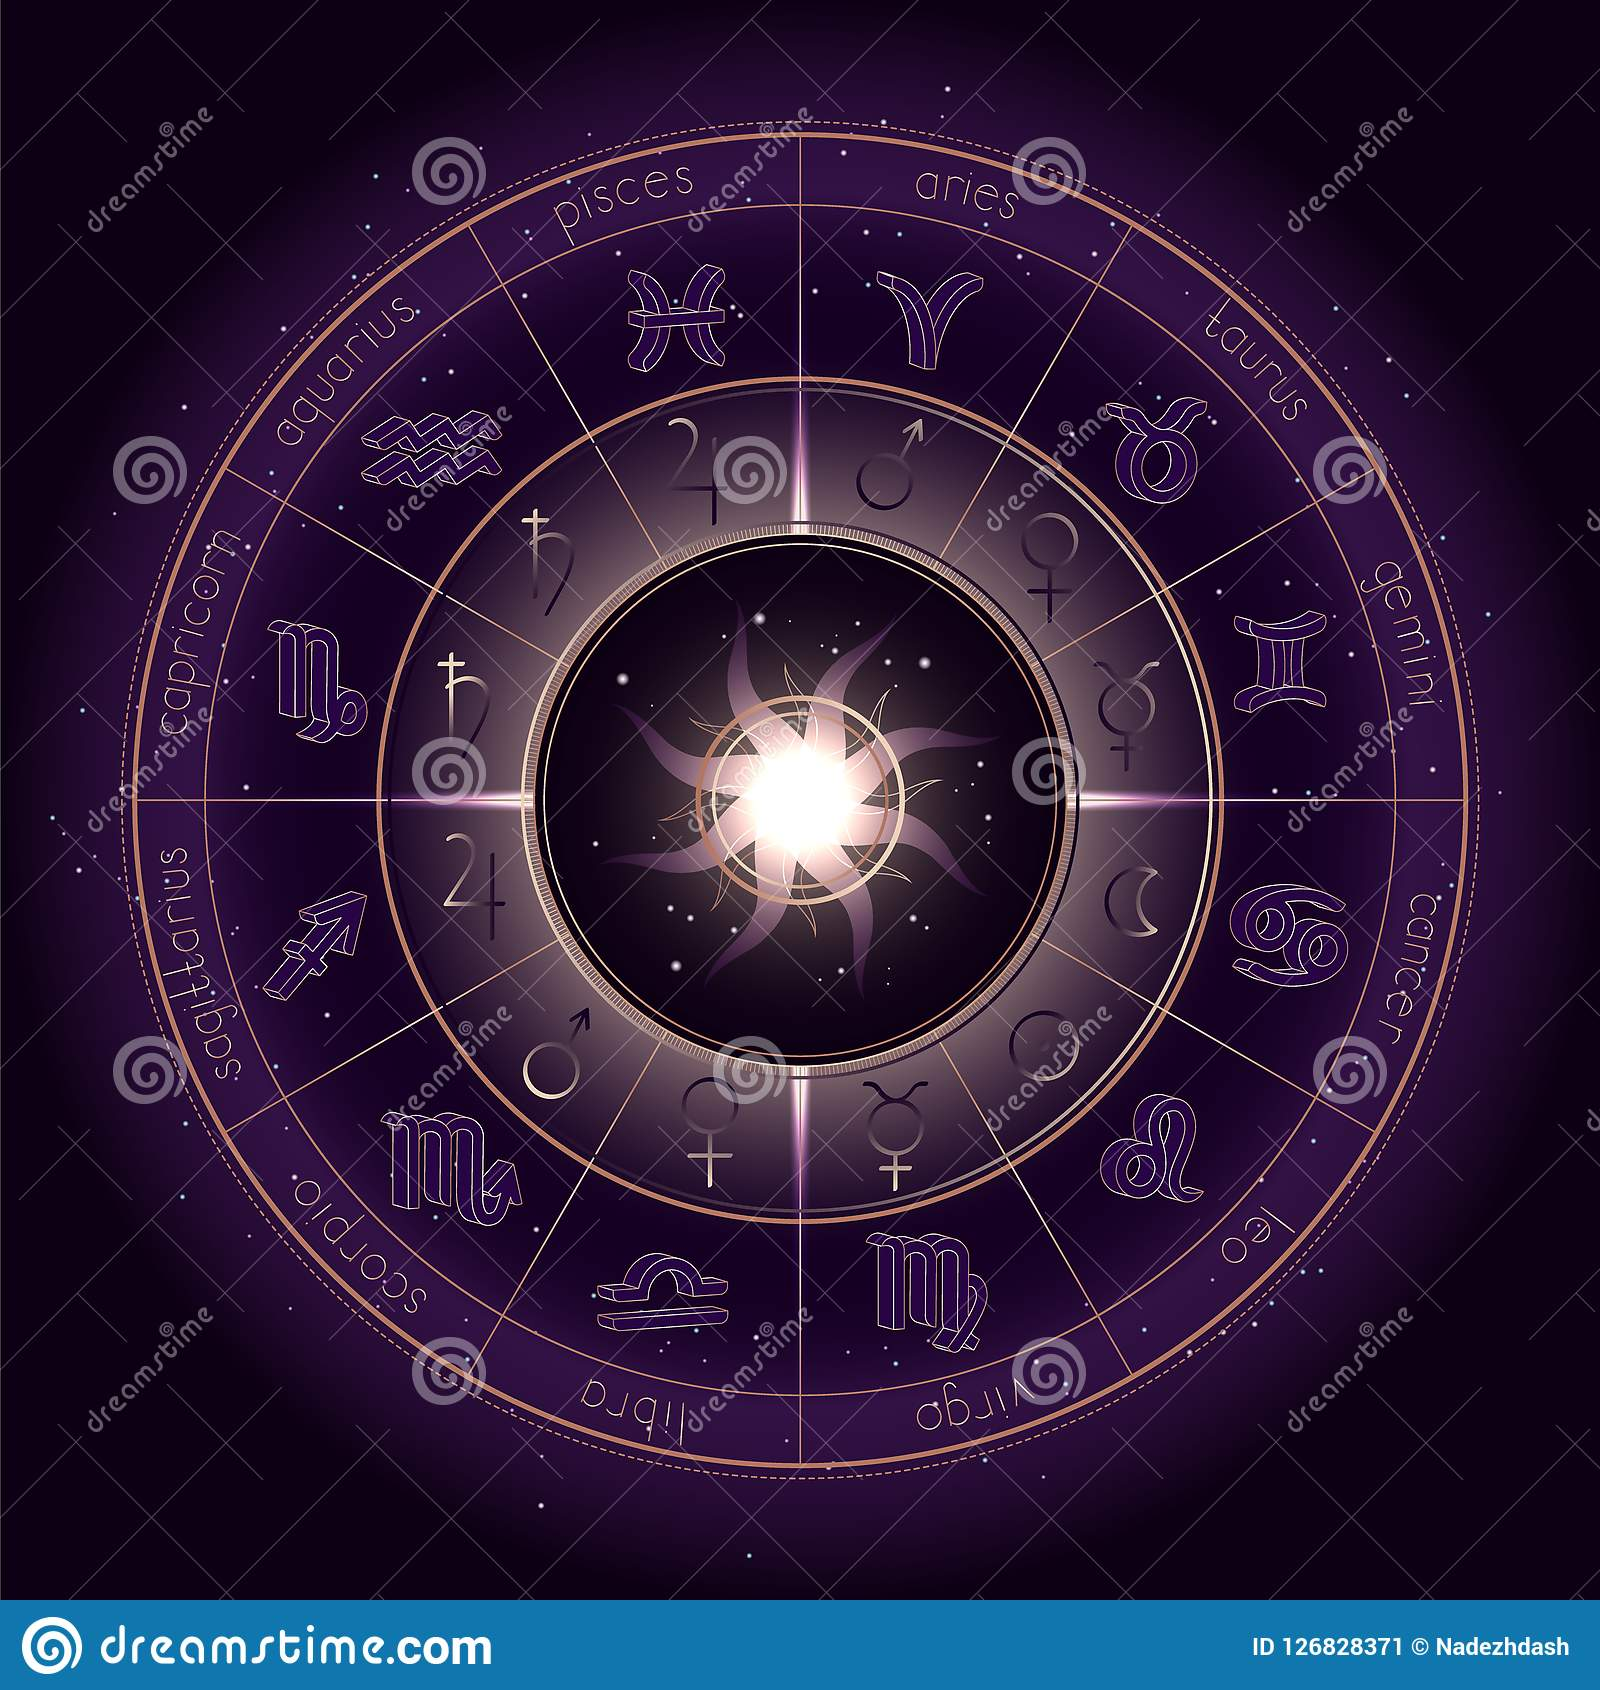 Vector illustration with Horoscope circle, Zodiac symbols and pictograms astrology planets on the starry night sky background with